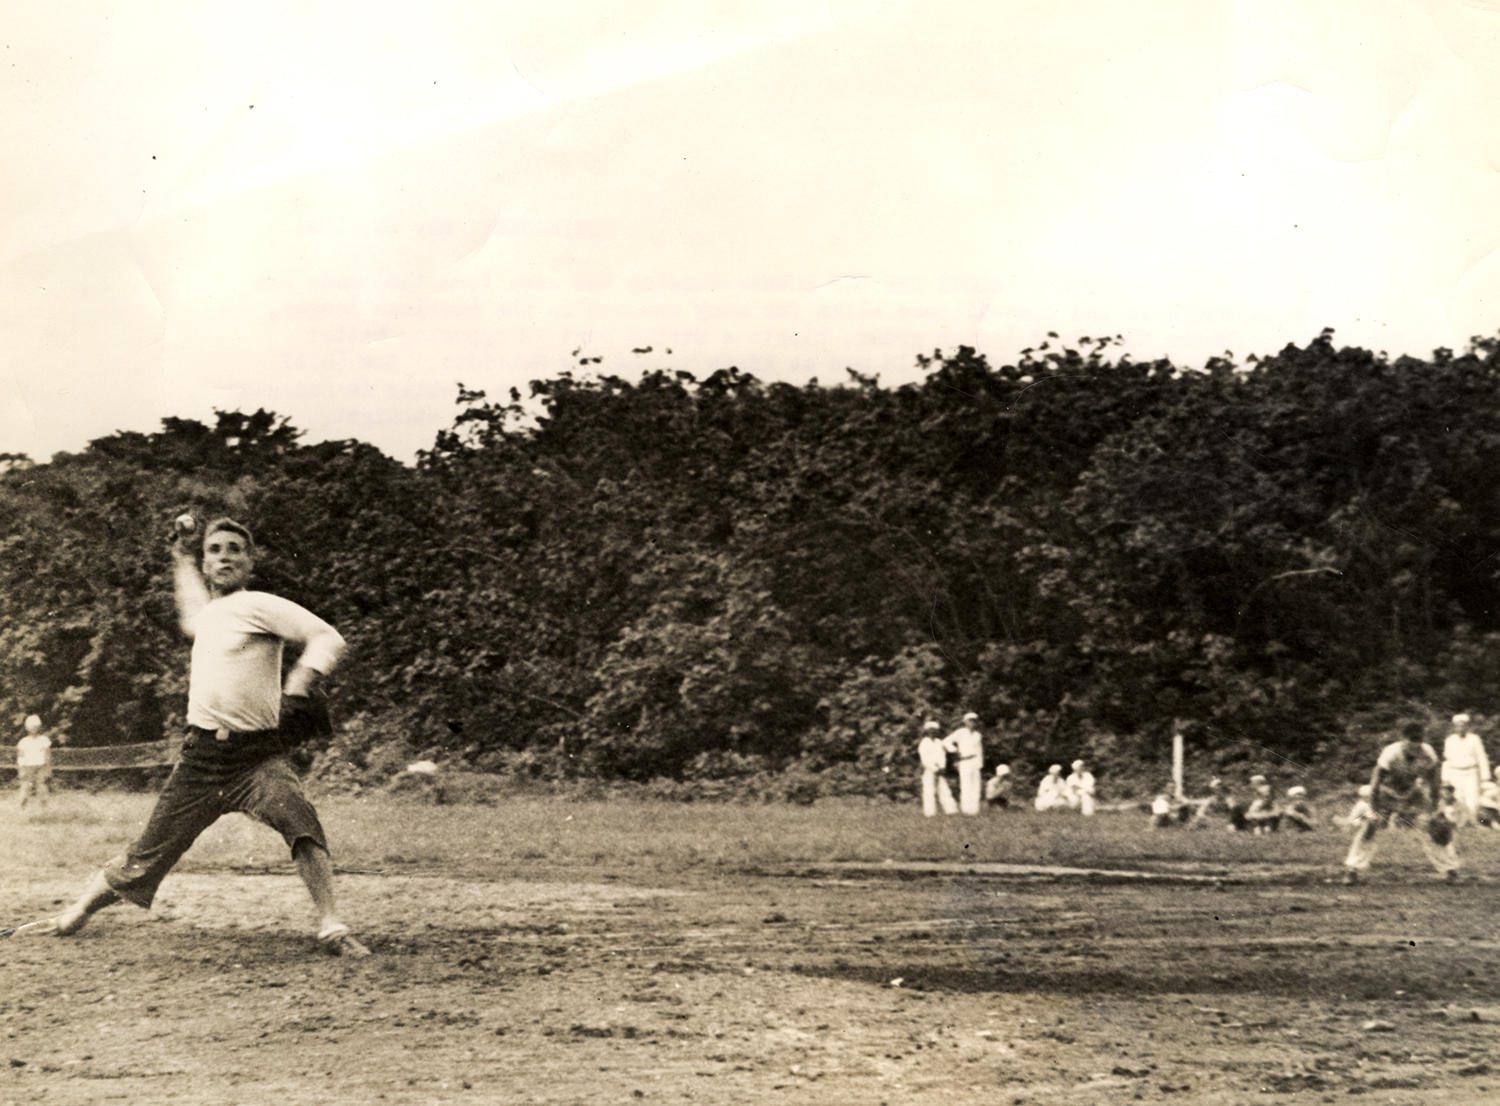 Bob Feller pitches in a recreational game while serving in the Navy during World War II. (National Baseball Hall of Fame)